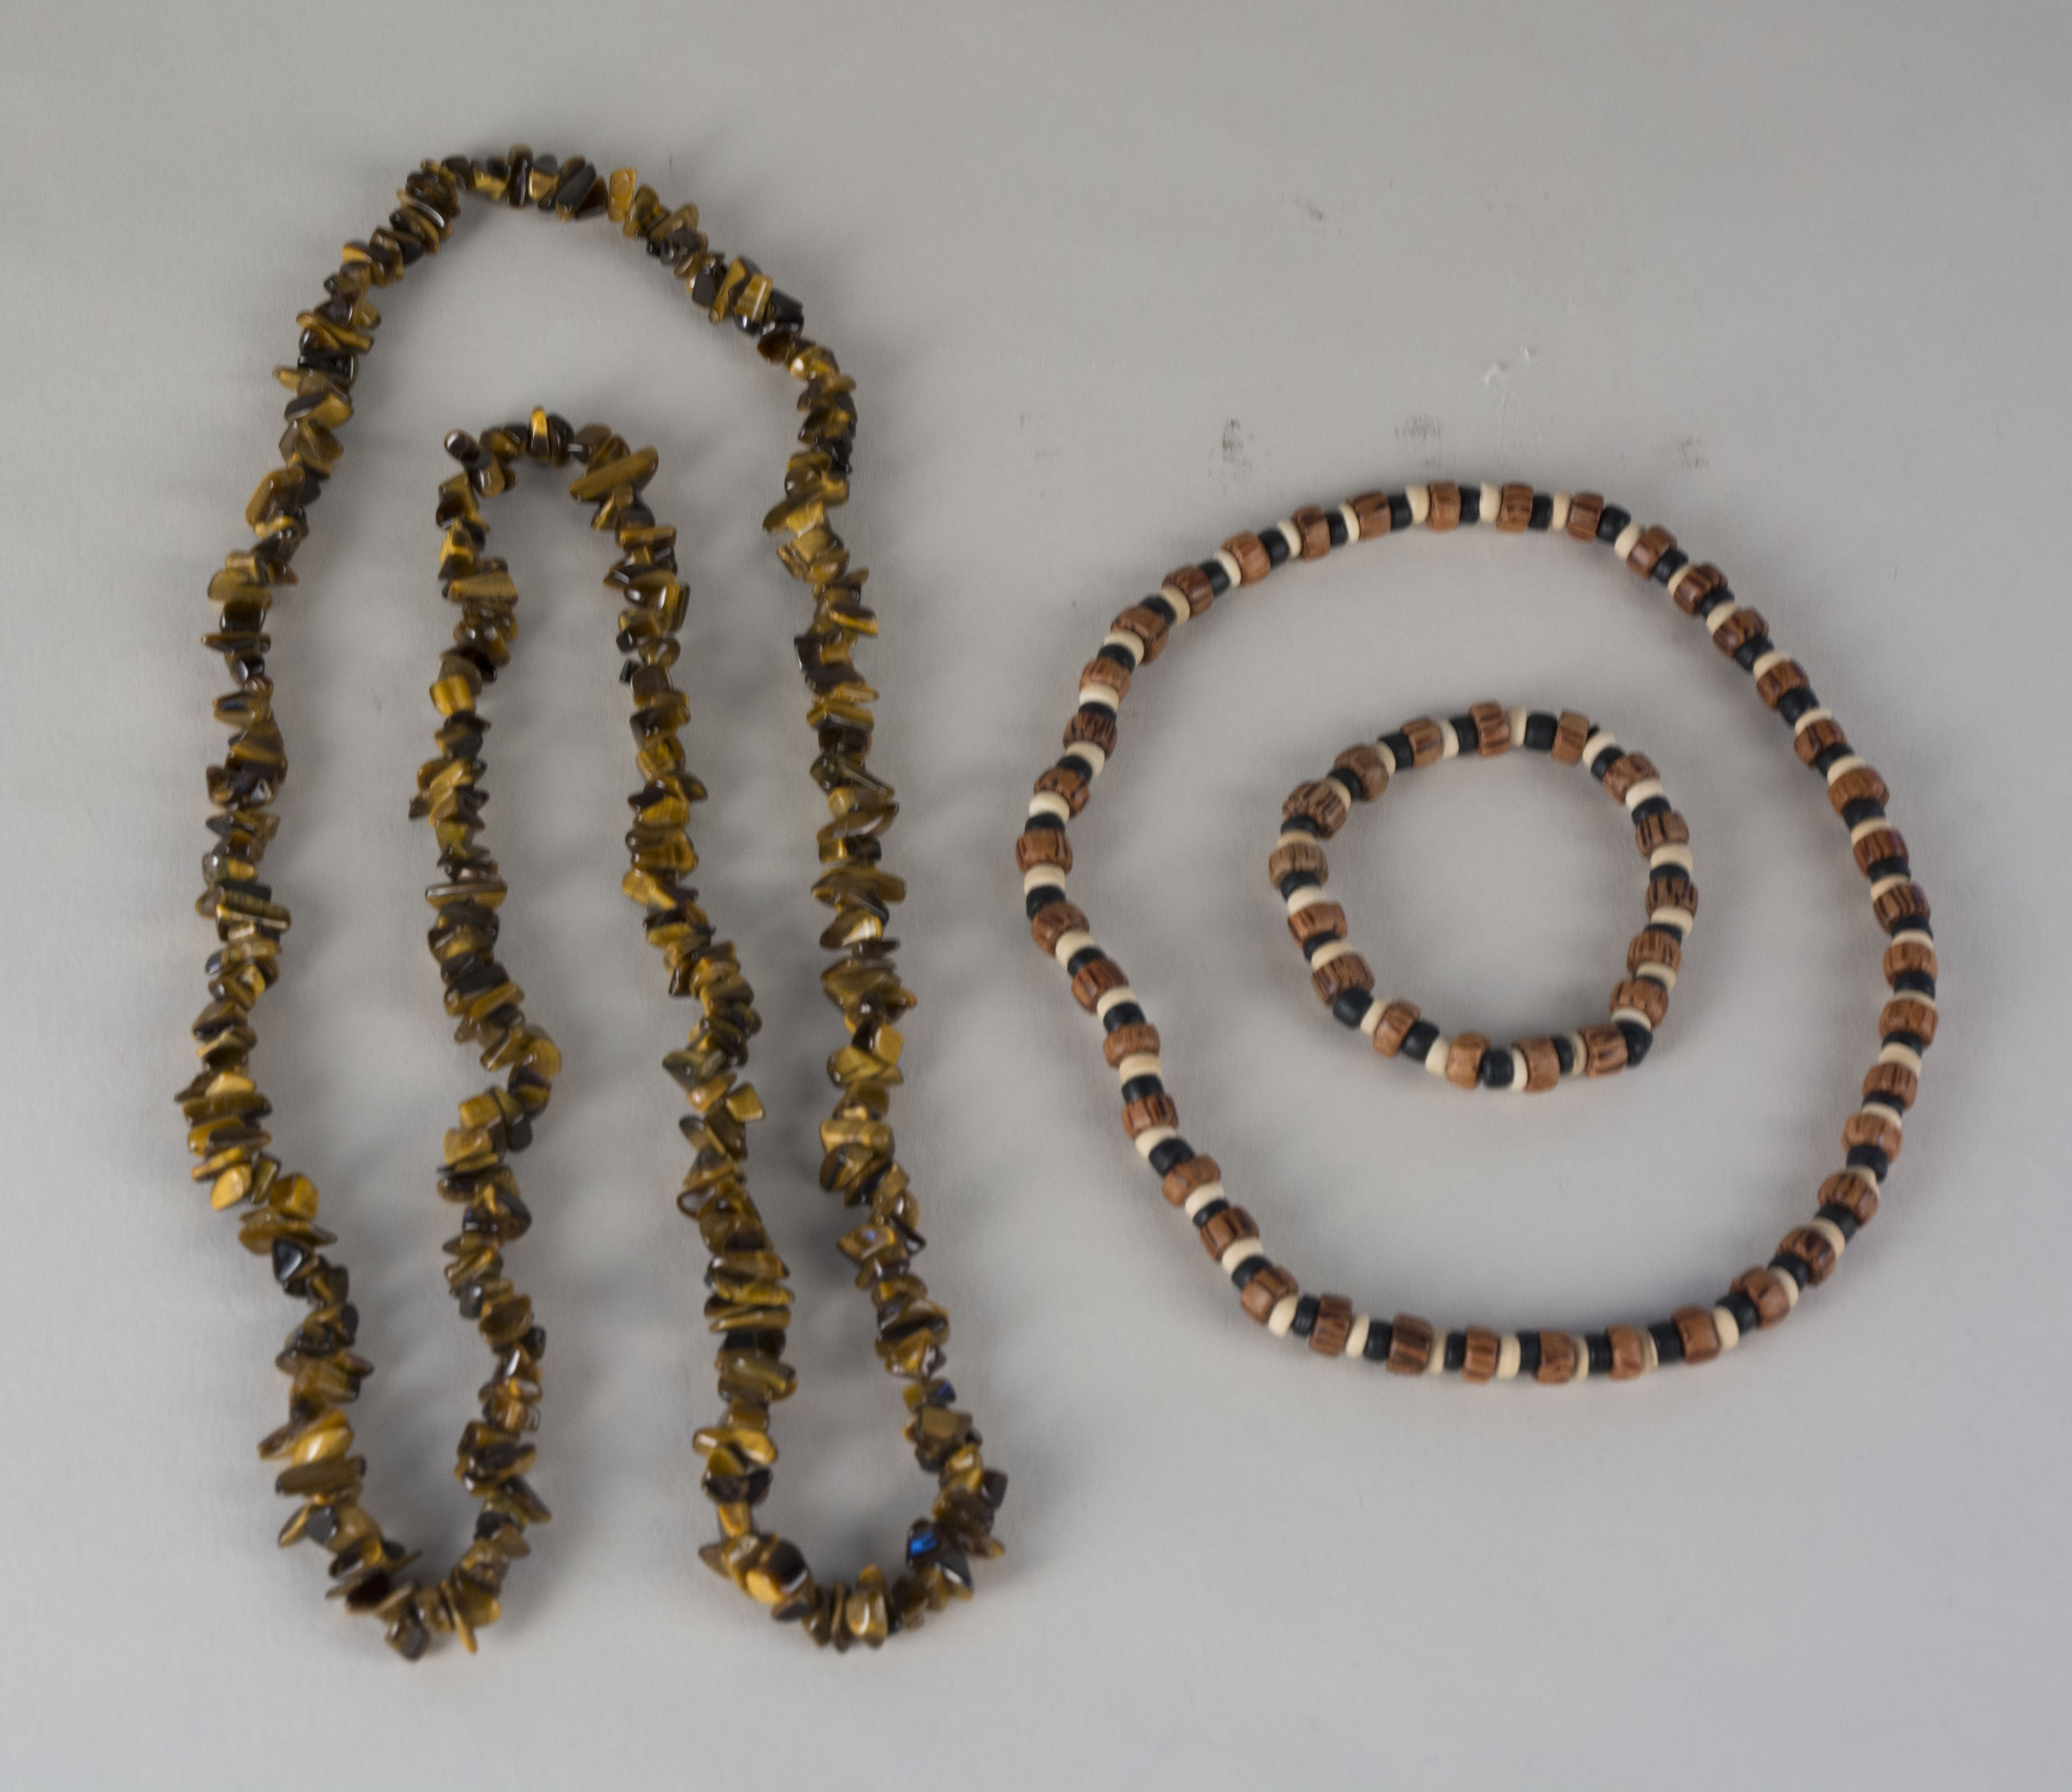 Necklaces and Bracelet owned by Necitas Tan Objects were a gift from Tan's niece, Eva Denoman, who is from Iloilo. They were given to Tan in 1975. Tan wears these to match her Filipino-style clothes, which she wears to gatherings.   Any views, findings, conclusions, or recommendations expressed in this story do not necessarily represent those of the National Endowment for the Humanities. [Copyright] Field Museum of Natural History - CC BY-NC